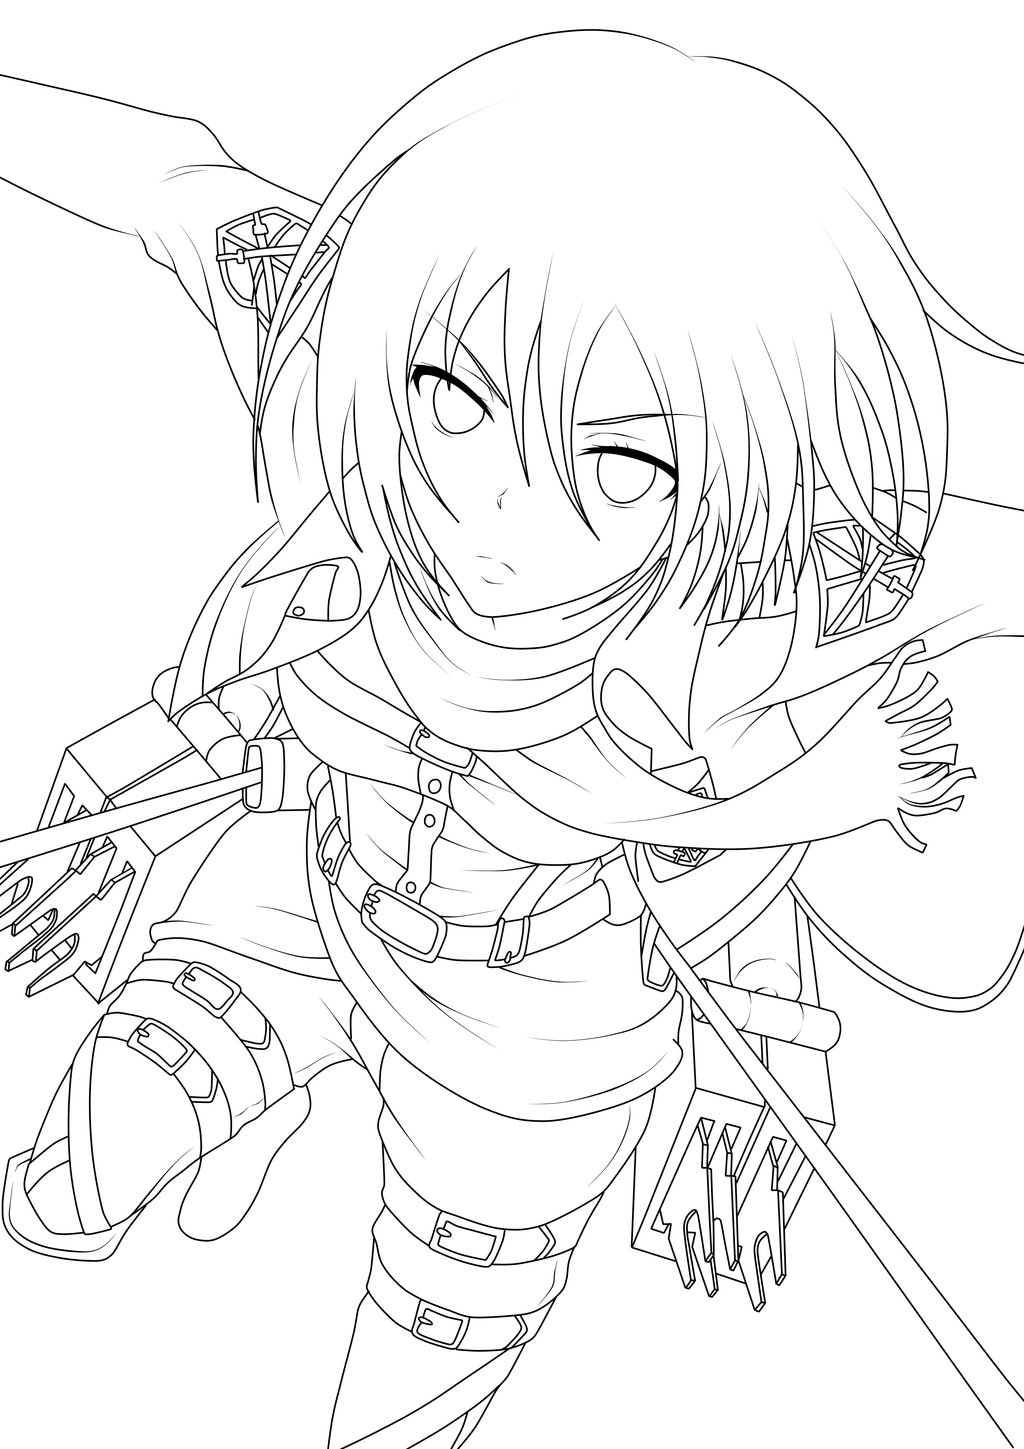 Anime Drawing Outlines at GetDrawings.com | Free for personal use ...